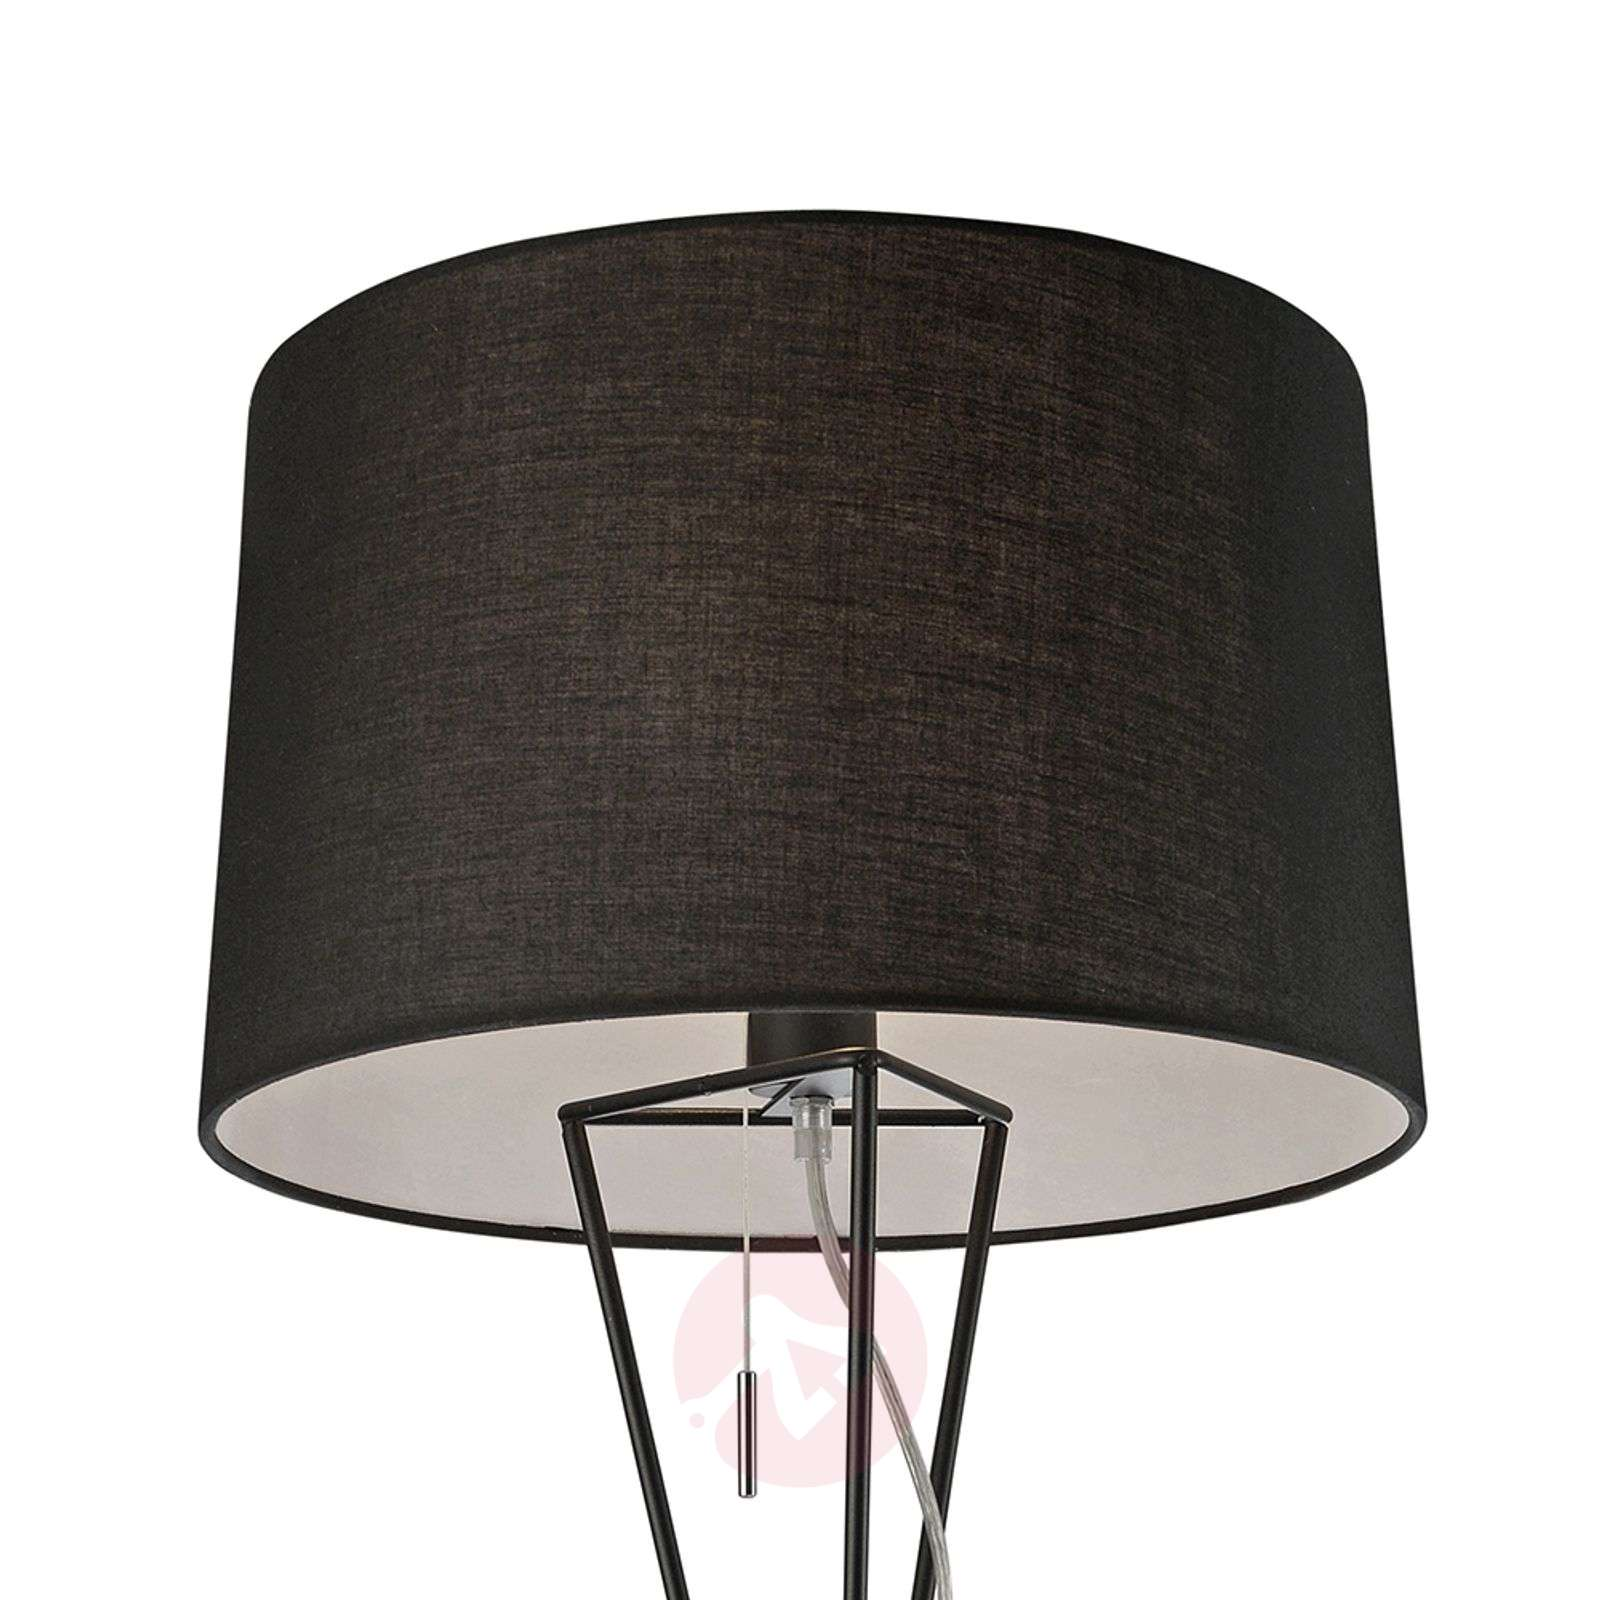 Villeroy and Boch New York – lampa stojąca, czarna-8507610-01